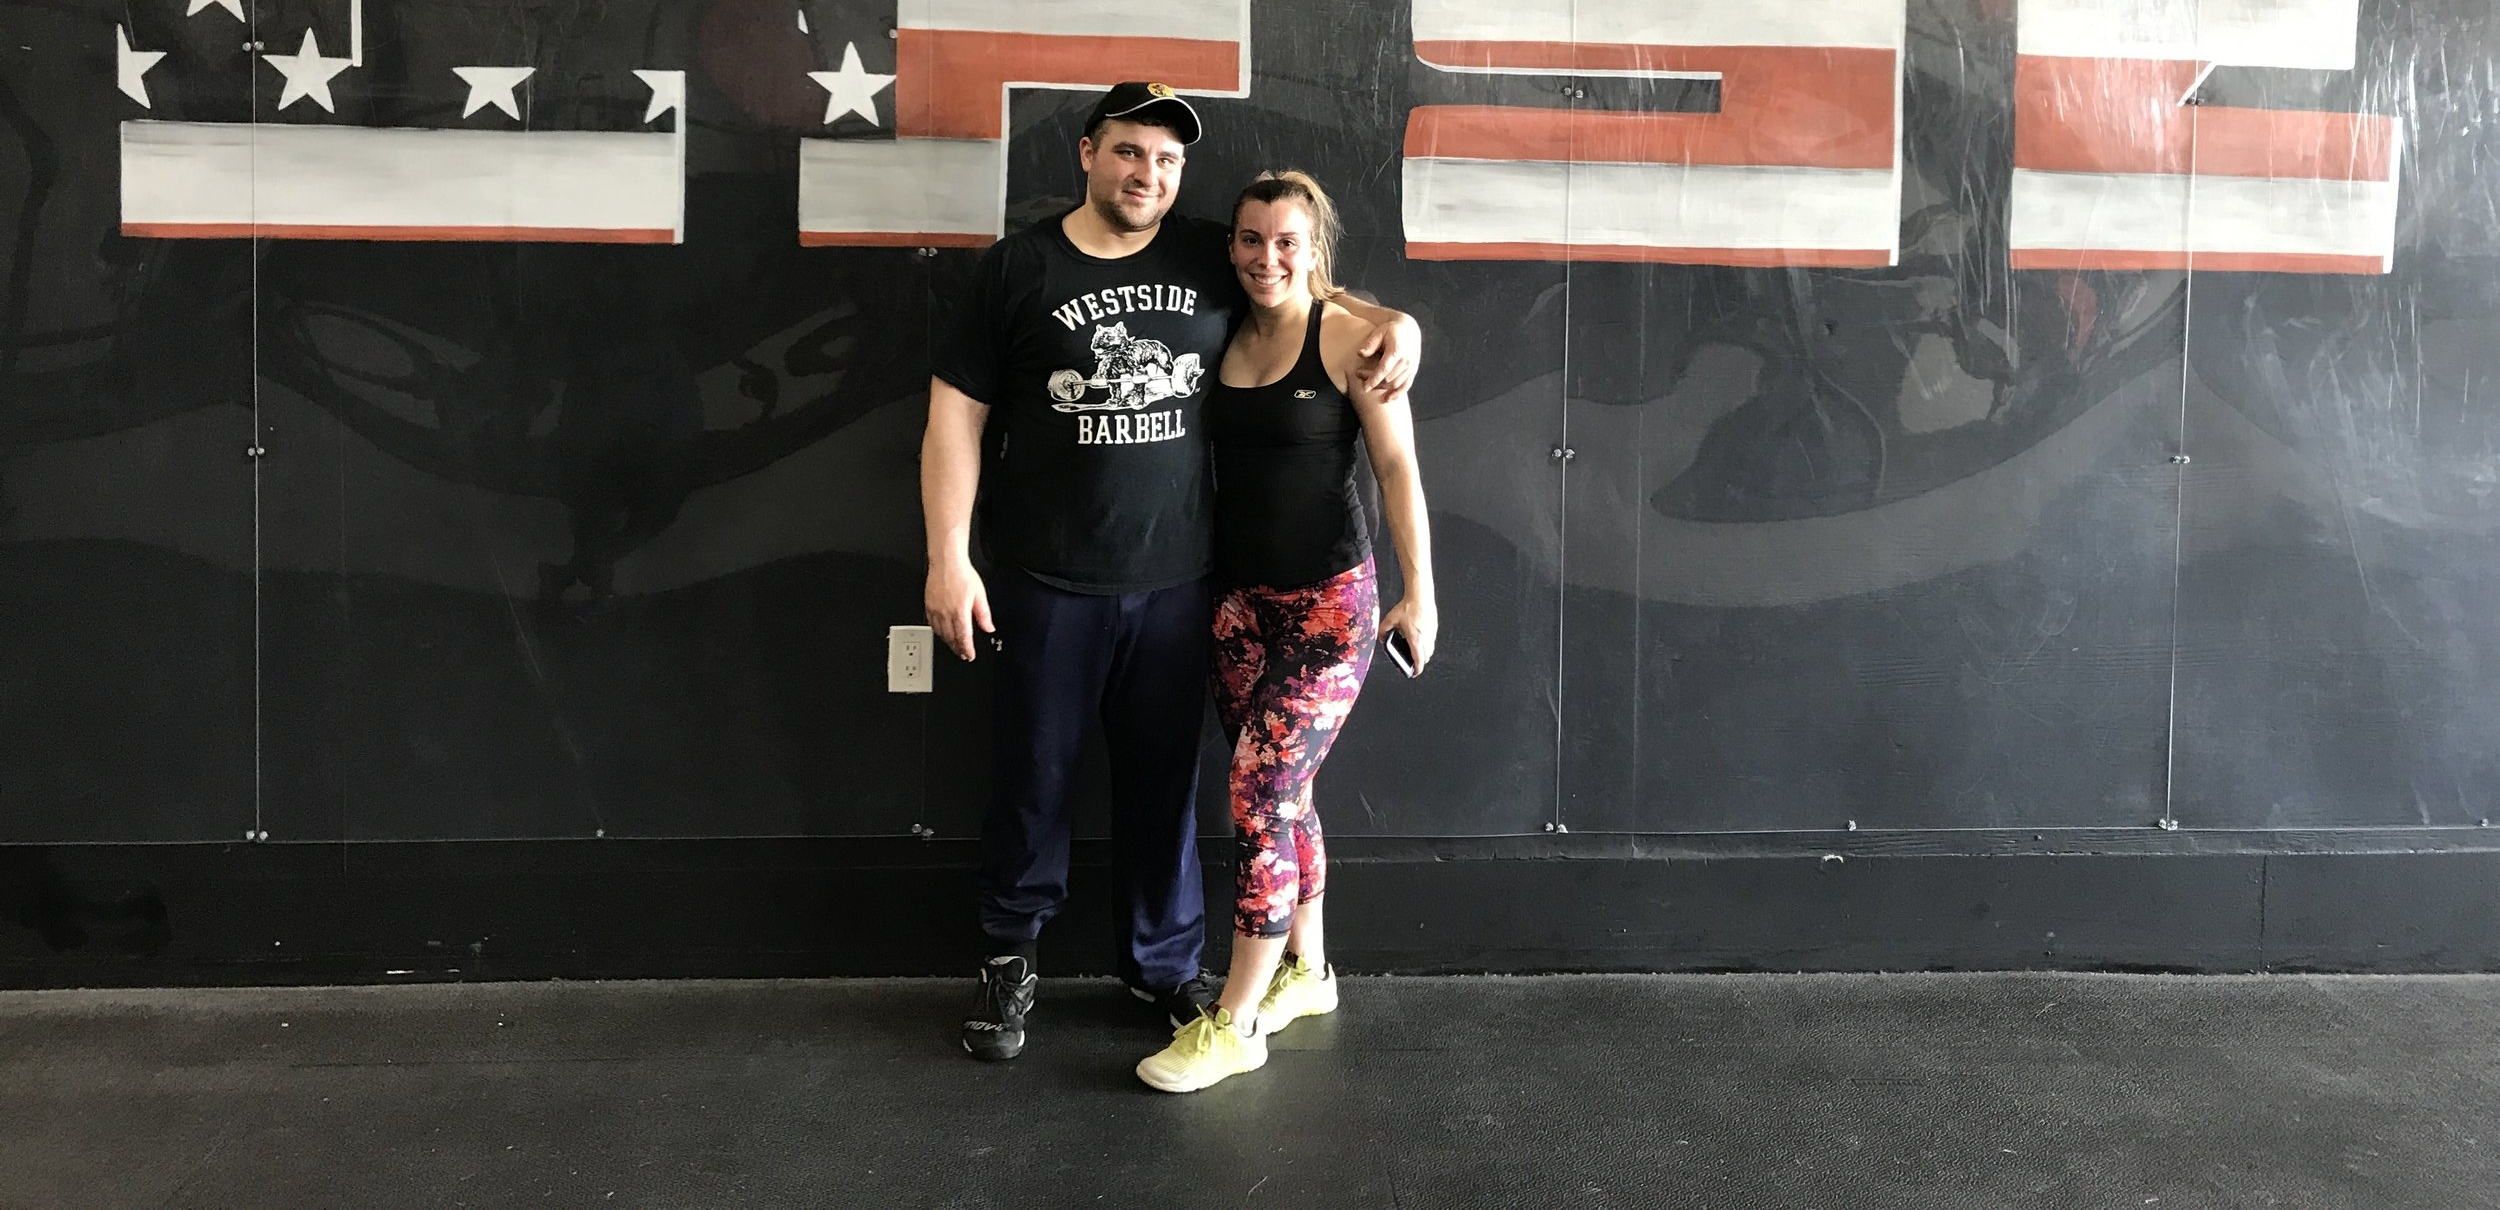 """- """"Julia is the best ever! My husband and I loved our workout dates. Julia is knowledgable and friendly; a joy to work with. She was even accommodating when I had to bring my 4 year old son with us one session. She included him for part of our workout. It was fun for us all!""""-Genesis"""